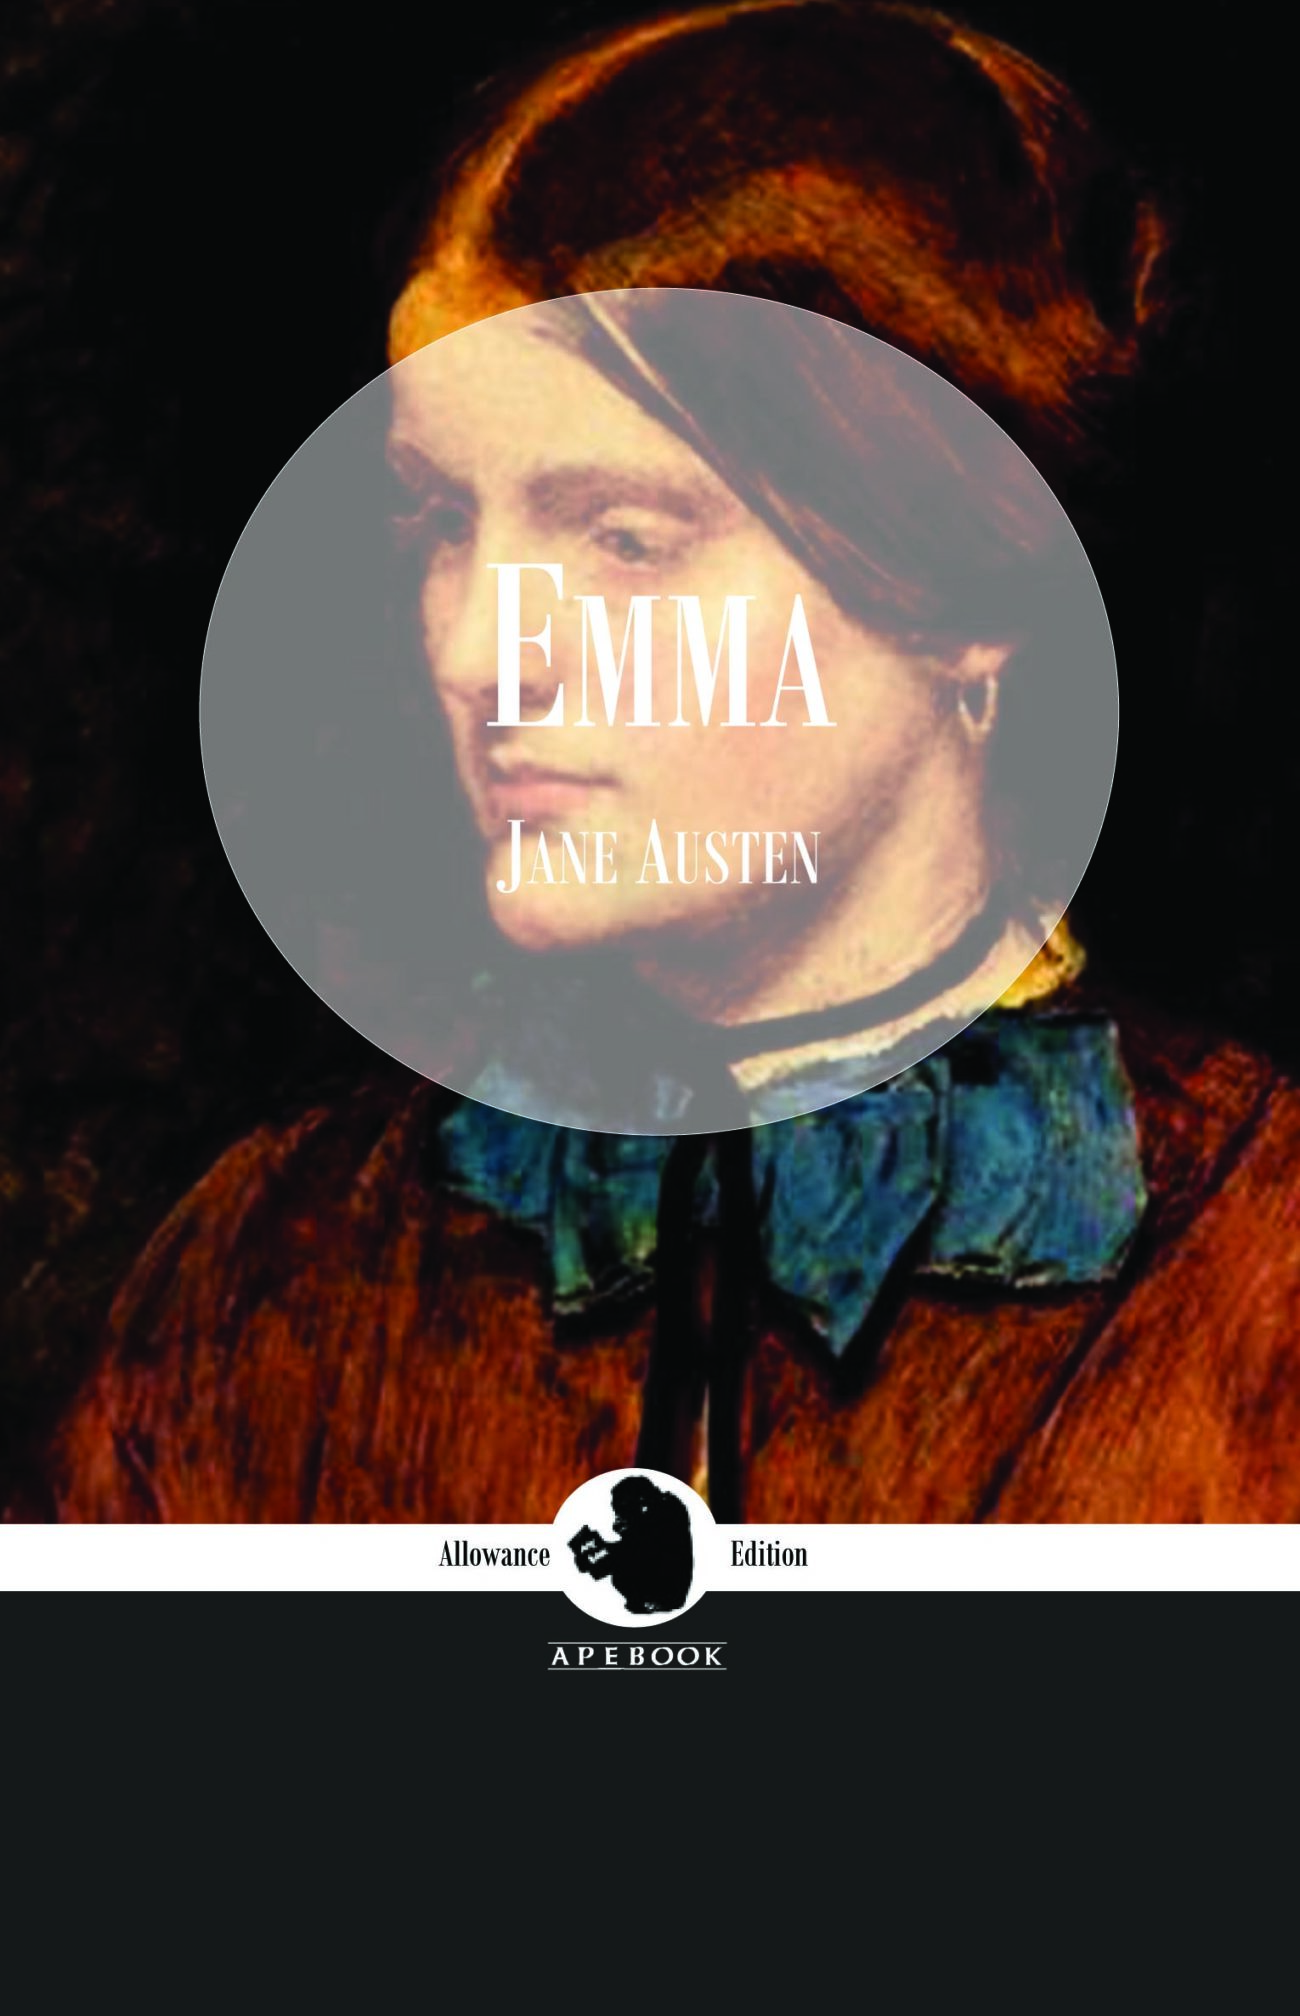 Jane Austen: Emma (Allowance Edition)